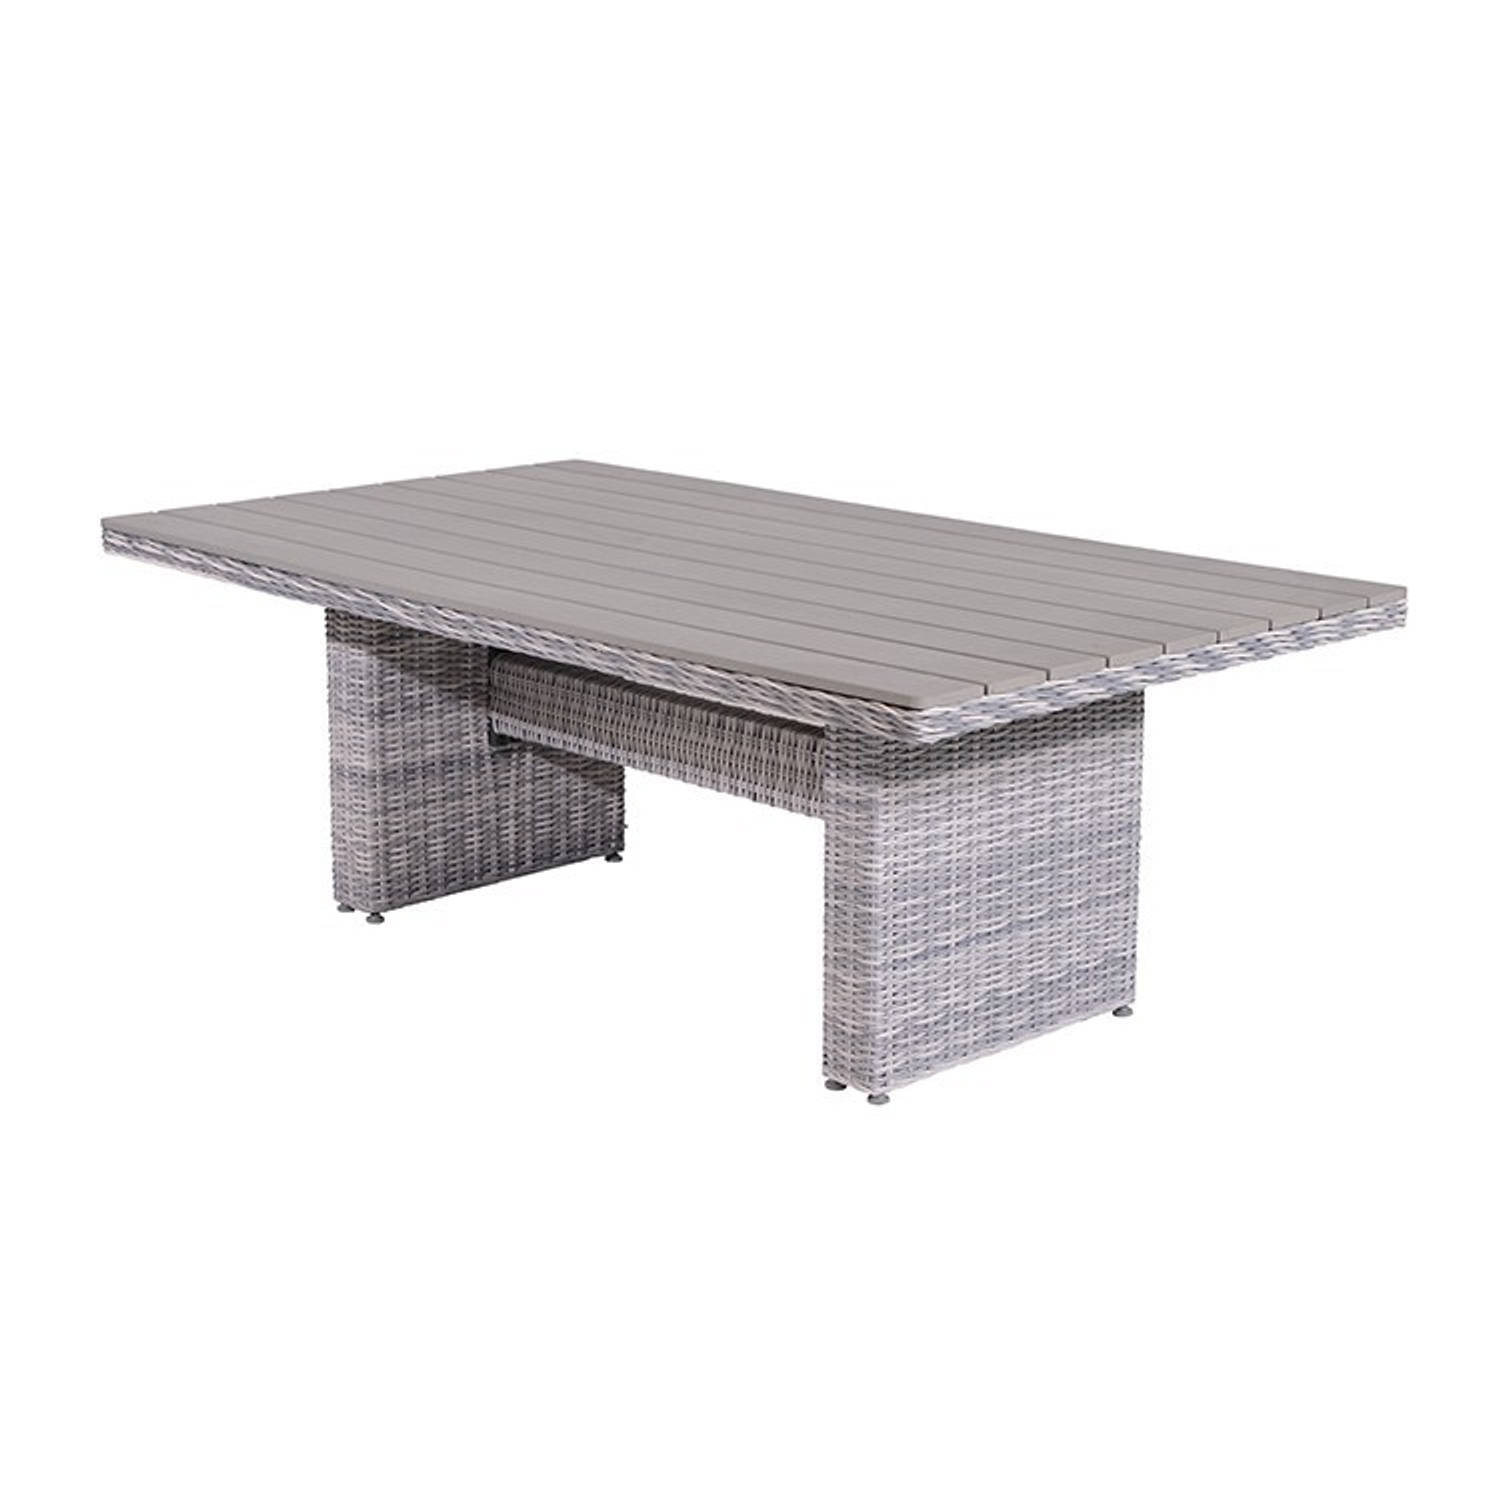 Garden Impressions Tennessee lounge dining tafel 180x100 cm wicker cloudy grey